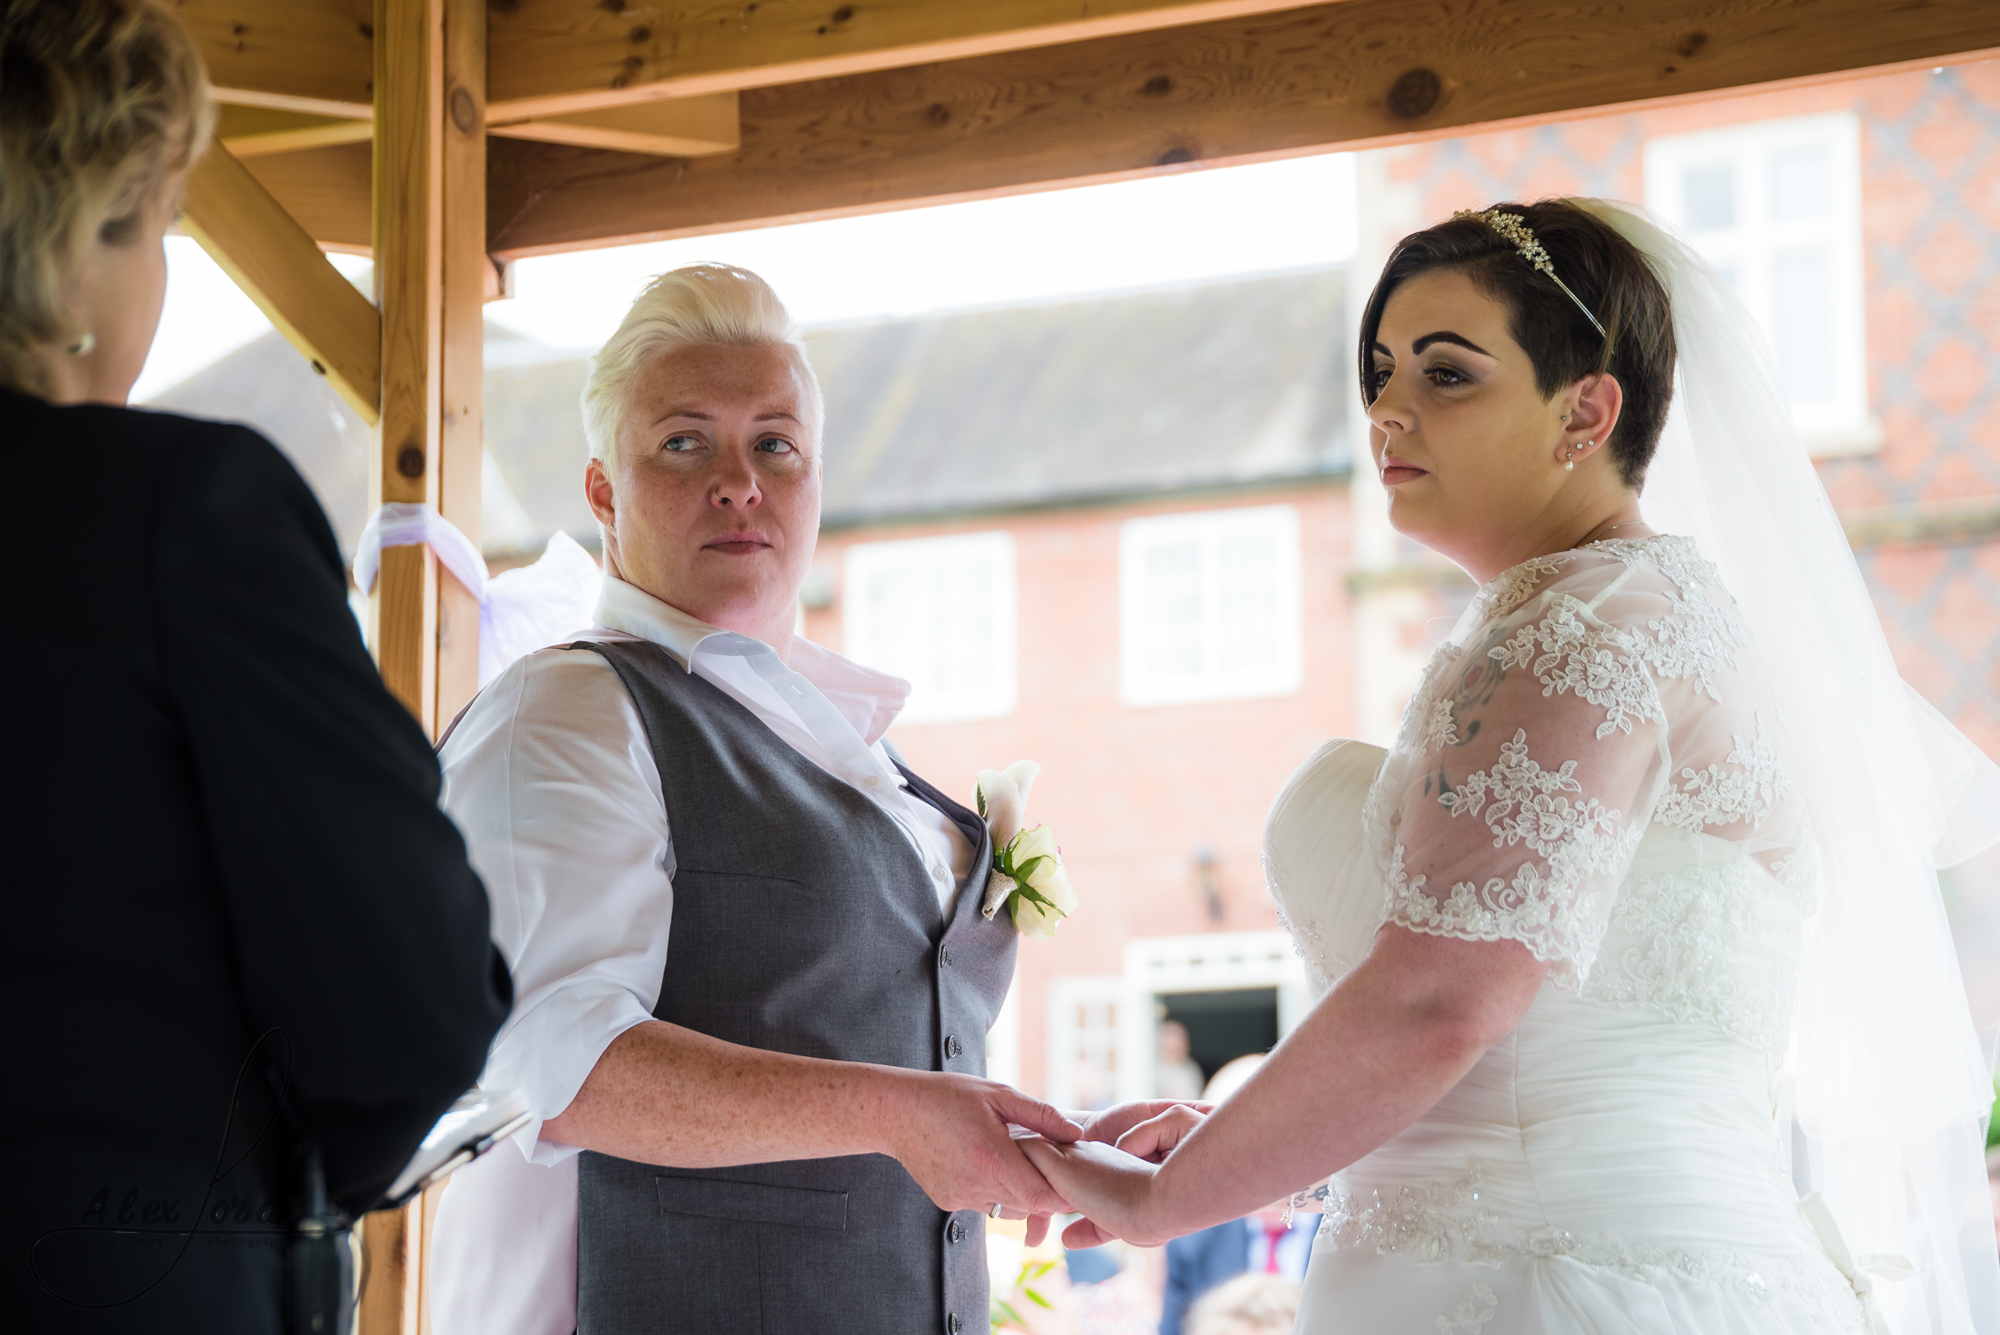 the bride and bride stand together saying their vows during their outdoor wedding ceremony